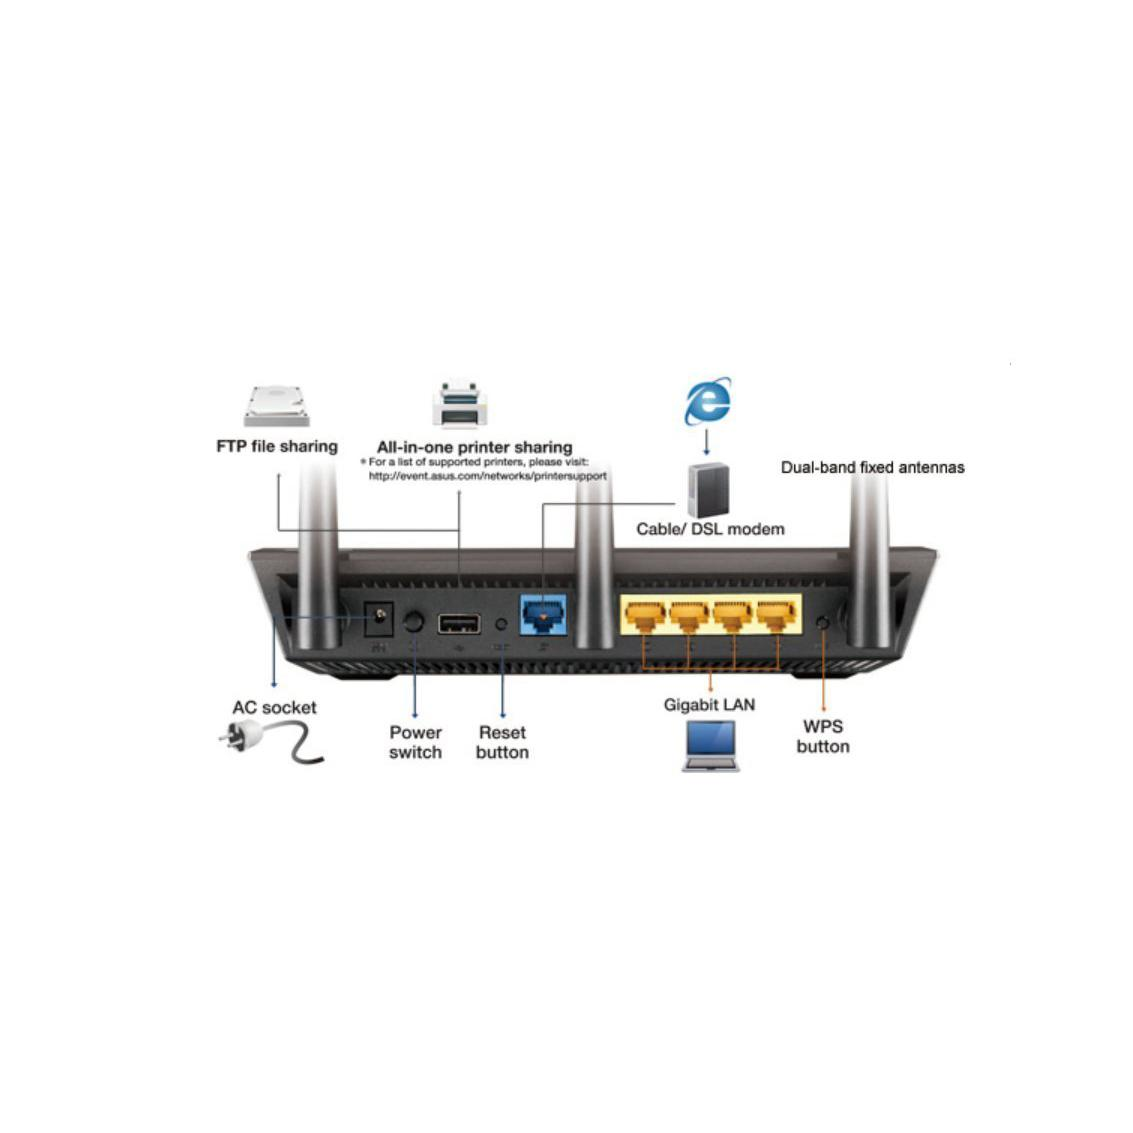 ASUS RT-AC66U B1 Dual Band 3 x 3 AC1750 Gigabit WiFi Router with  AiProtection network security powered by Trend Micro, Adaptive QoS and  Parental